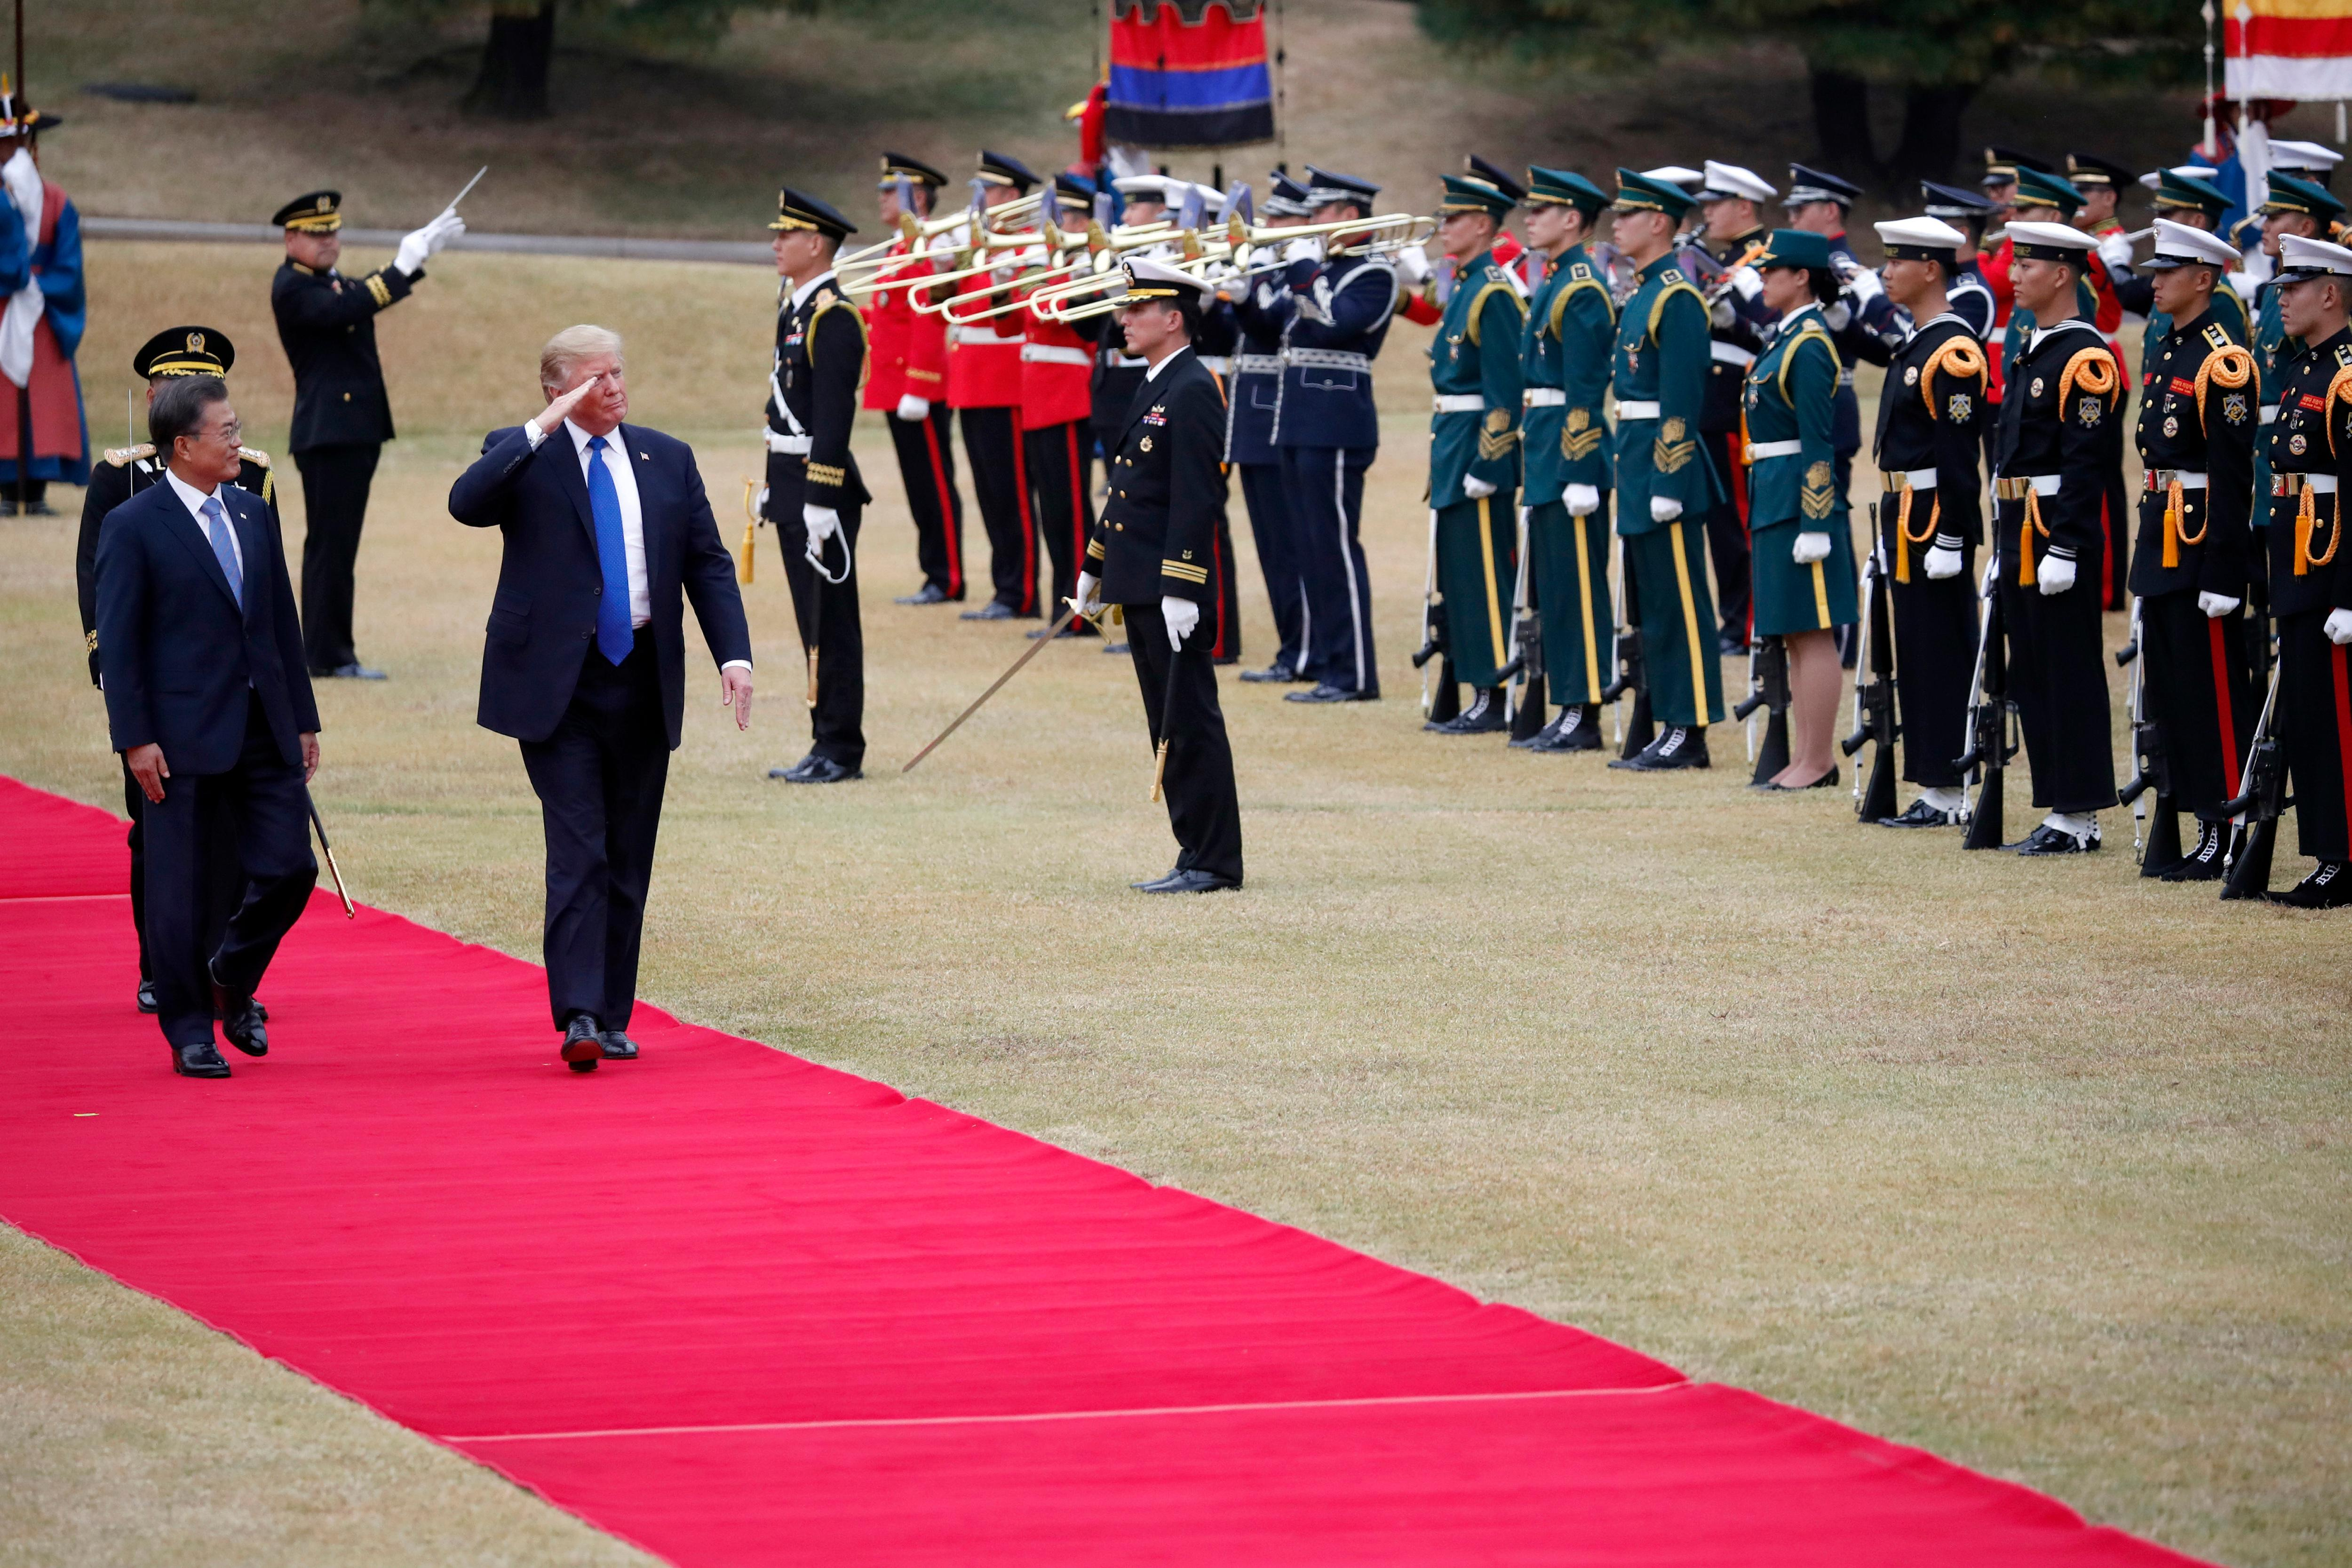 U.S. President Donald Trump, right on red carpet, walks with South Korea's President Moon Jae-in during a welcoming ceremony at the Presidential Blue House in Seoul Tuesday, Nov. 7, 2017. (Kim Hong-ji/Pool Photo via AP)